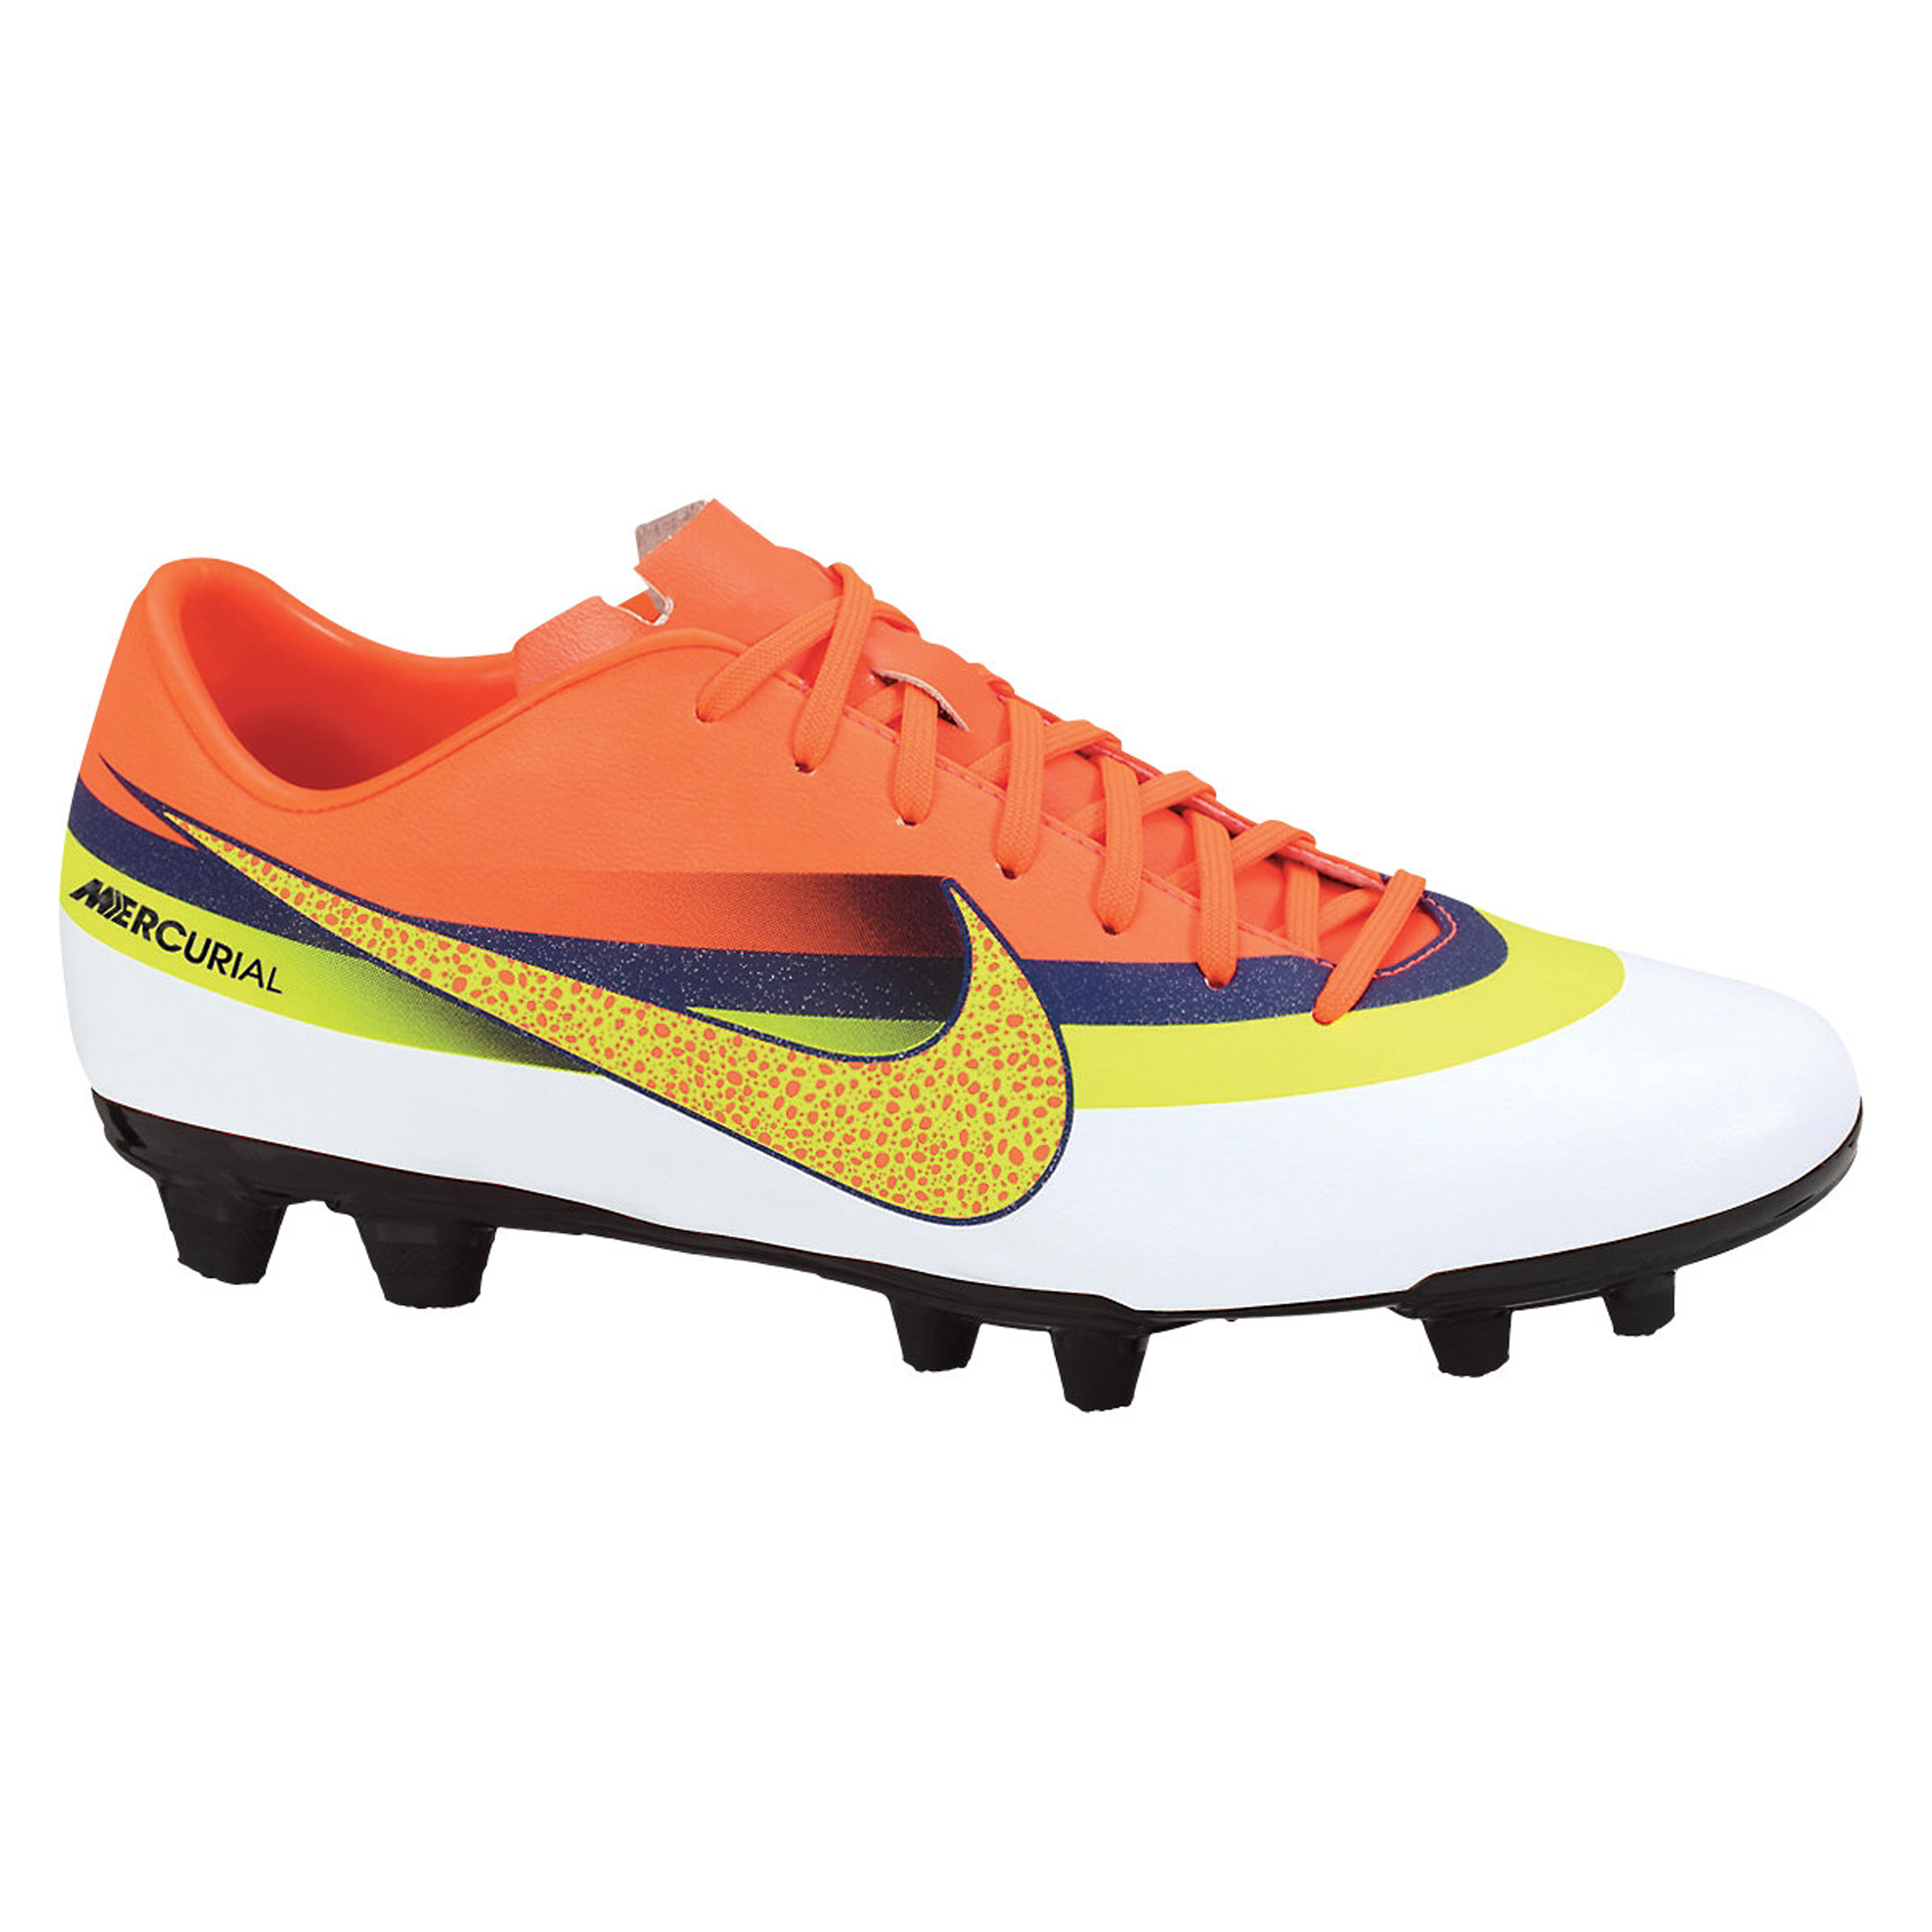 Nike Mercurial Vortex CR7 Firm Ground Football Boots - White/Volt/Loyal Blue/Total Crimson